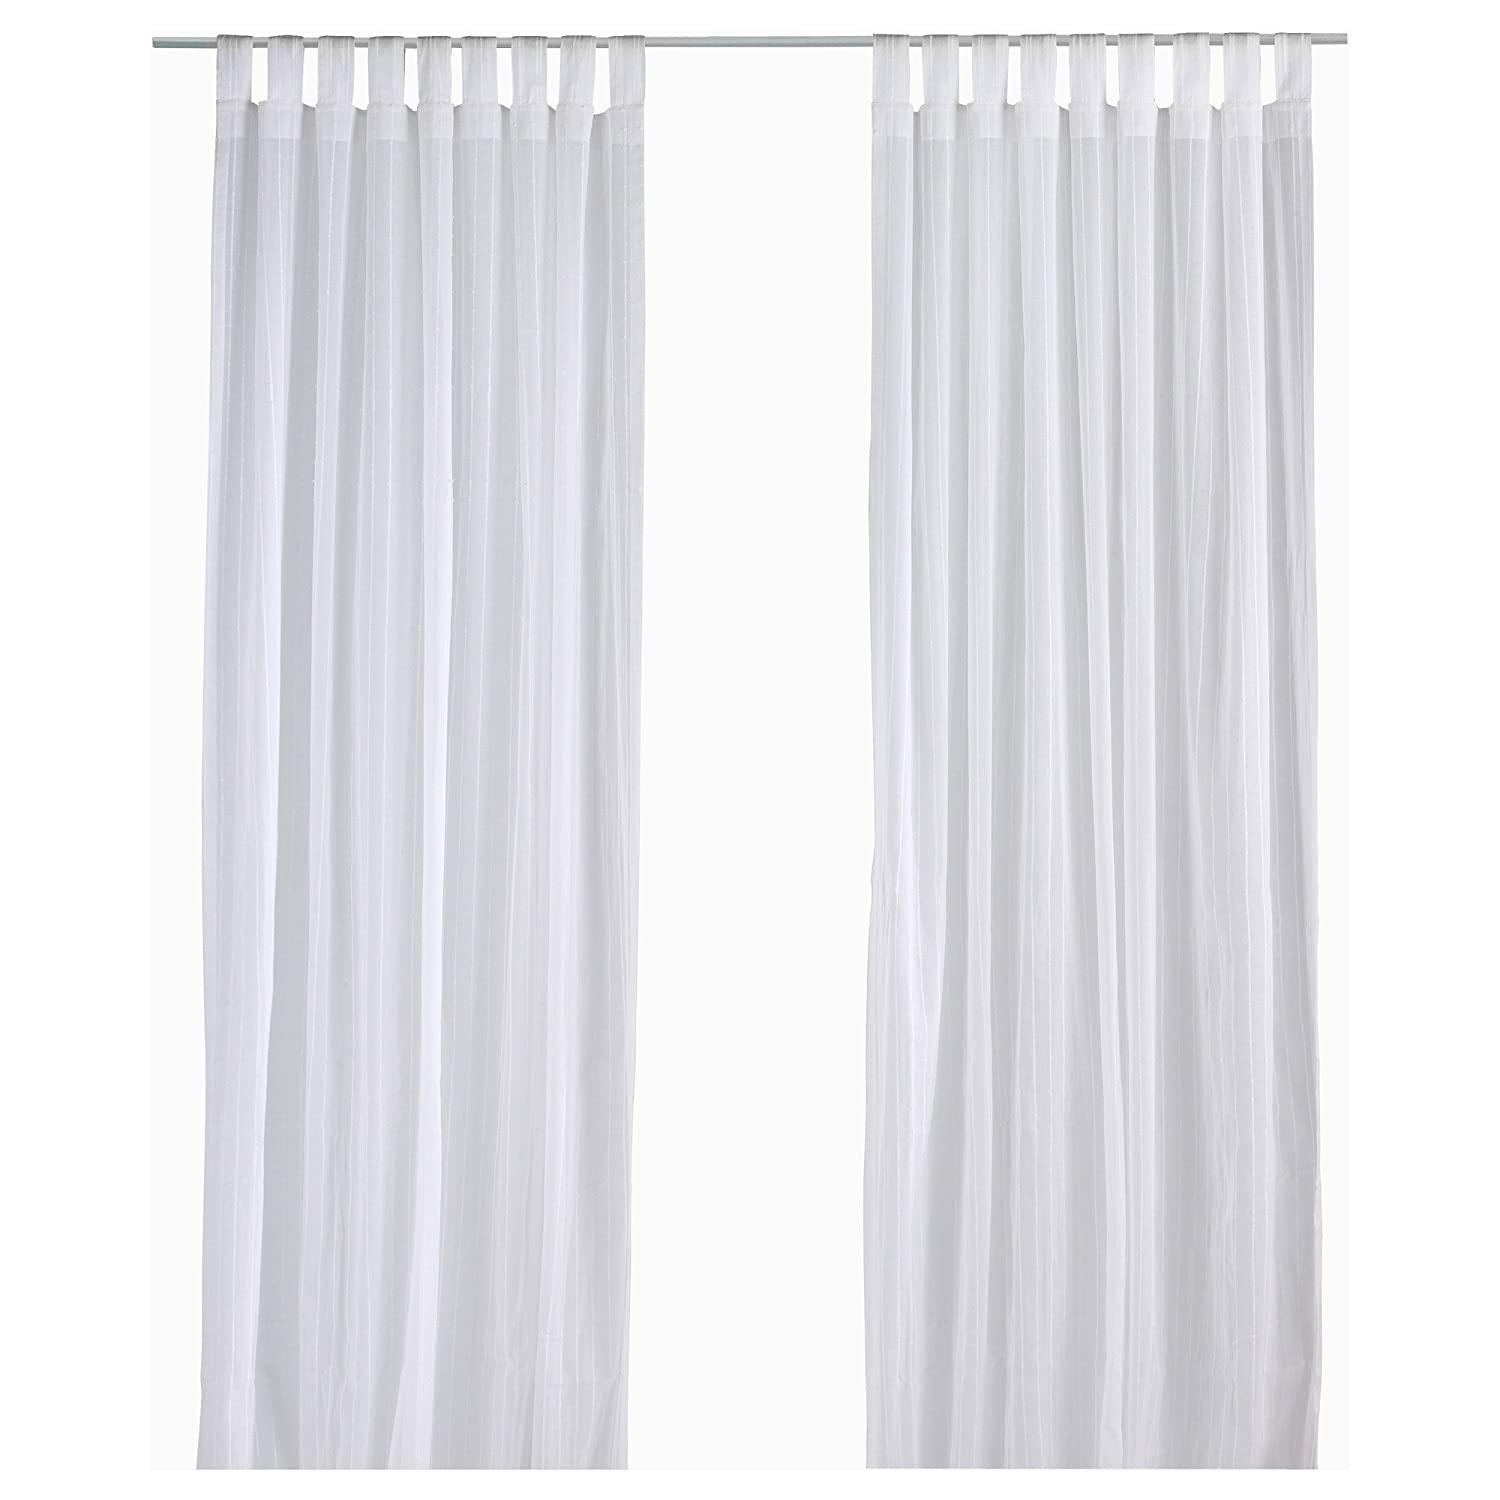 Amazon.com: Ikea Matilda Sheer Curtains 1 Pair, White: Home & Kitchen